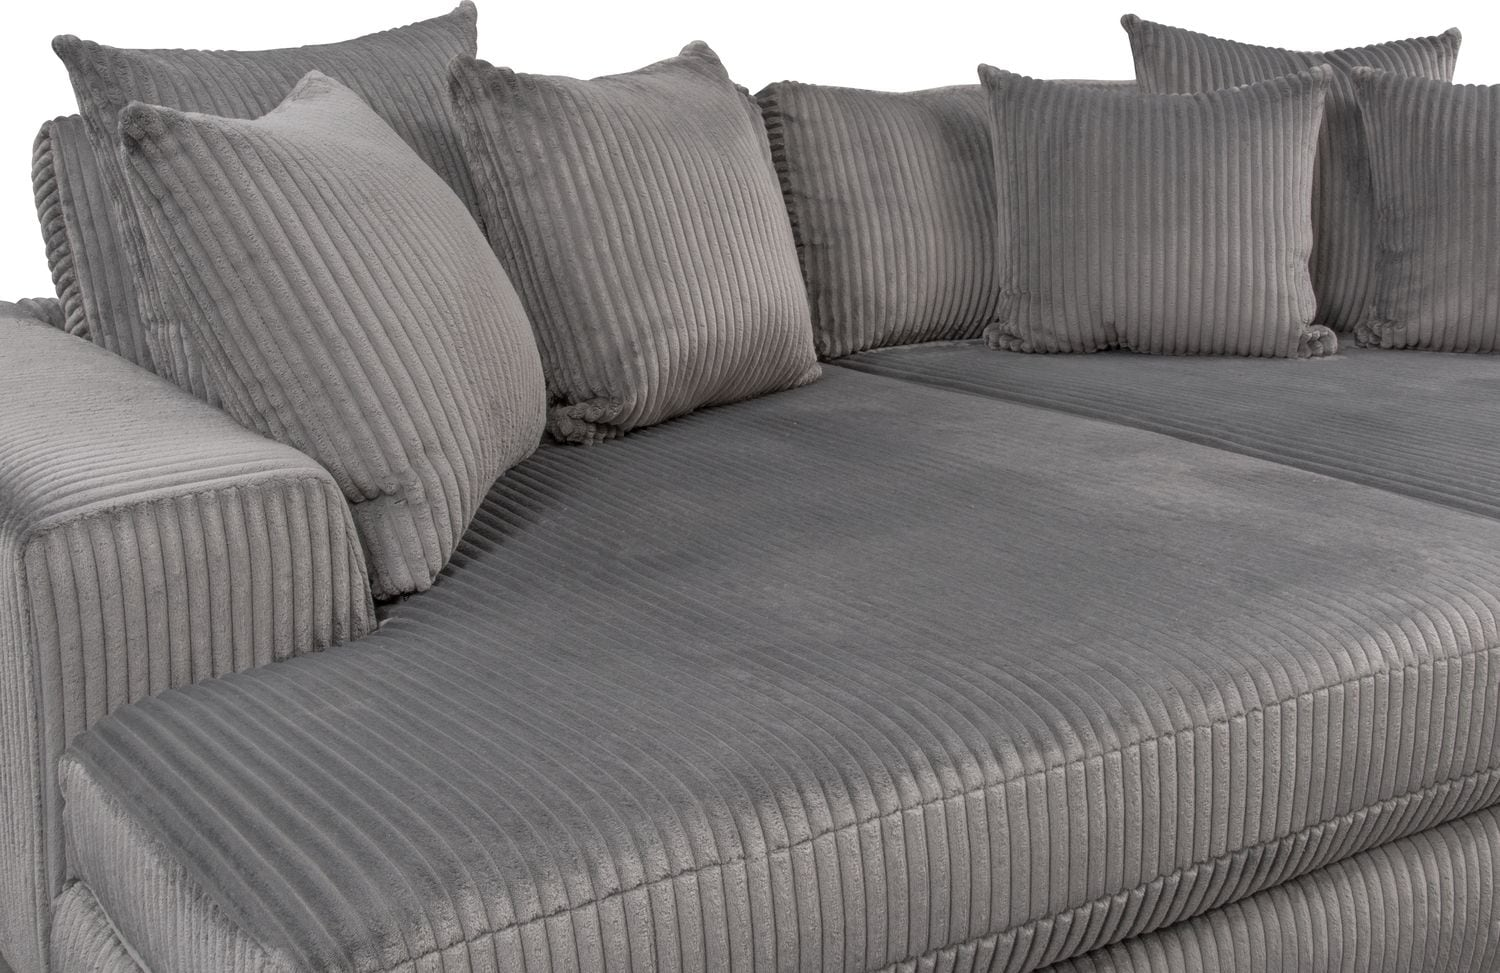 Double Chaise Lounge Sectional Sofa